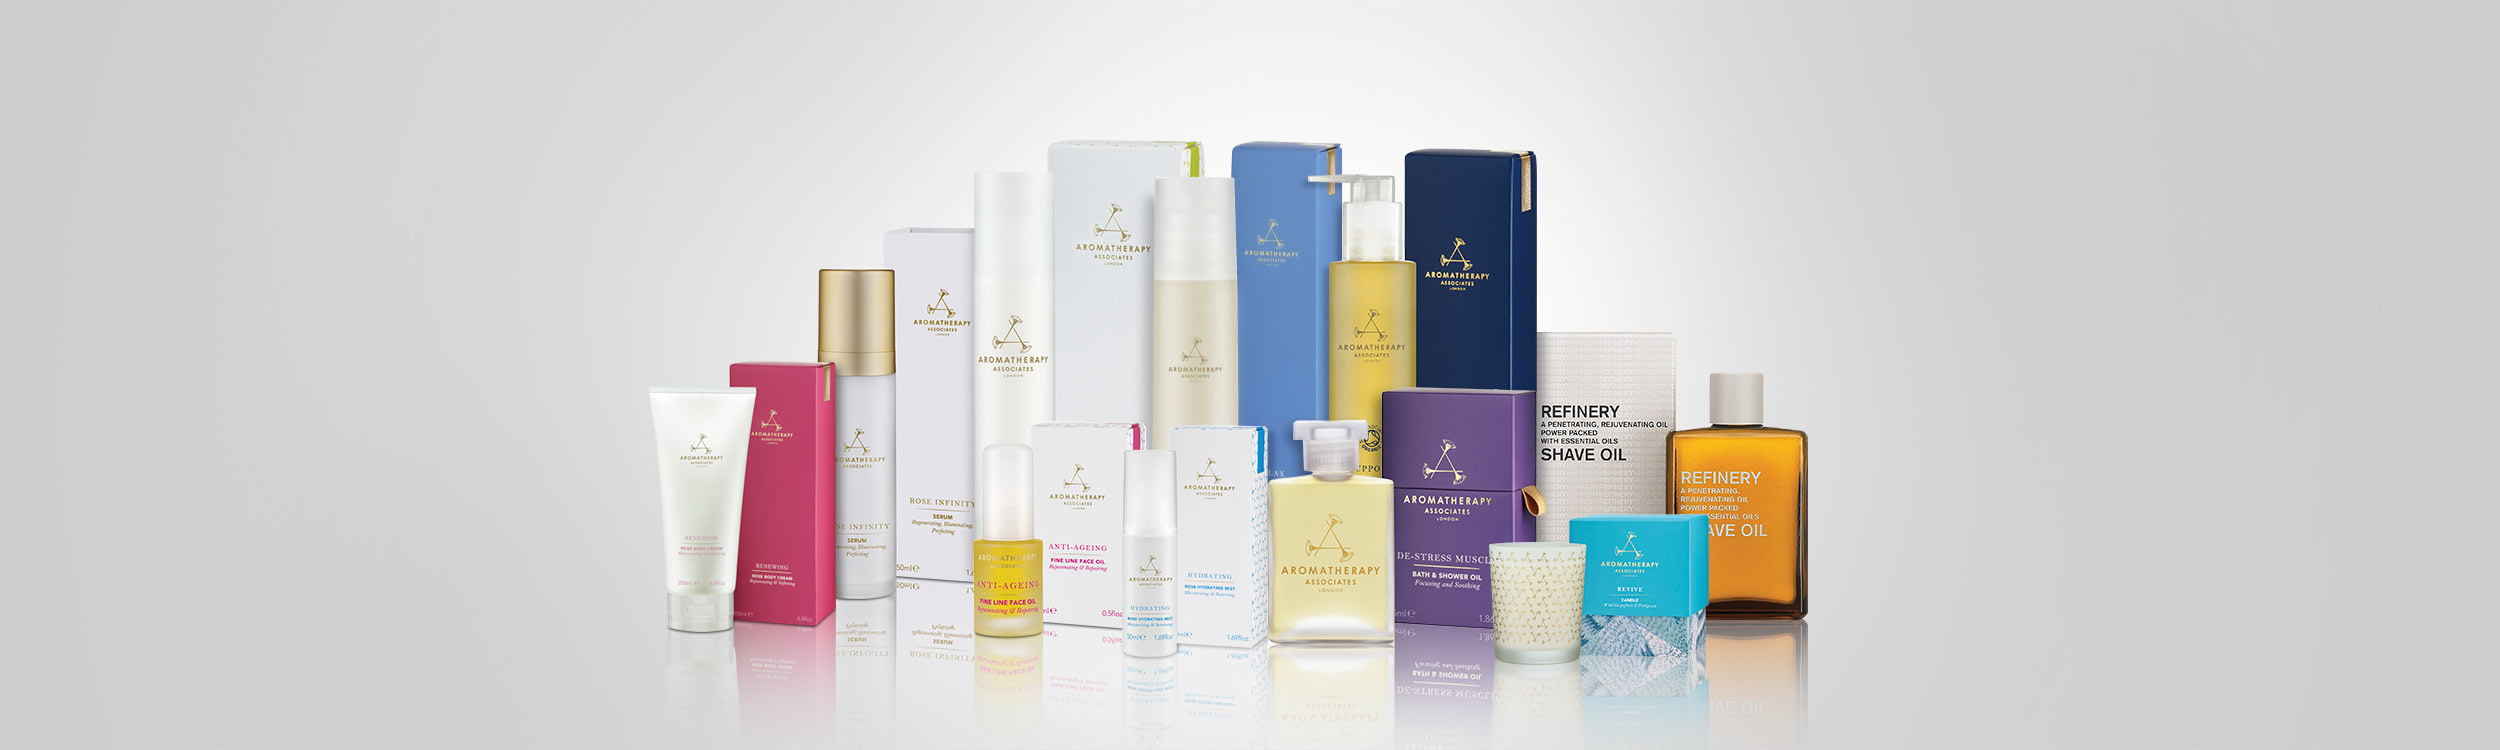 Aromatherapy Associates Skincare Products At Dermacare